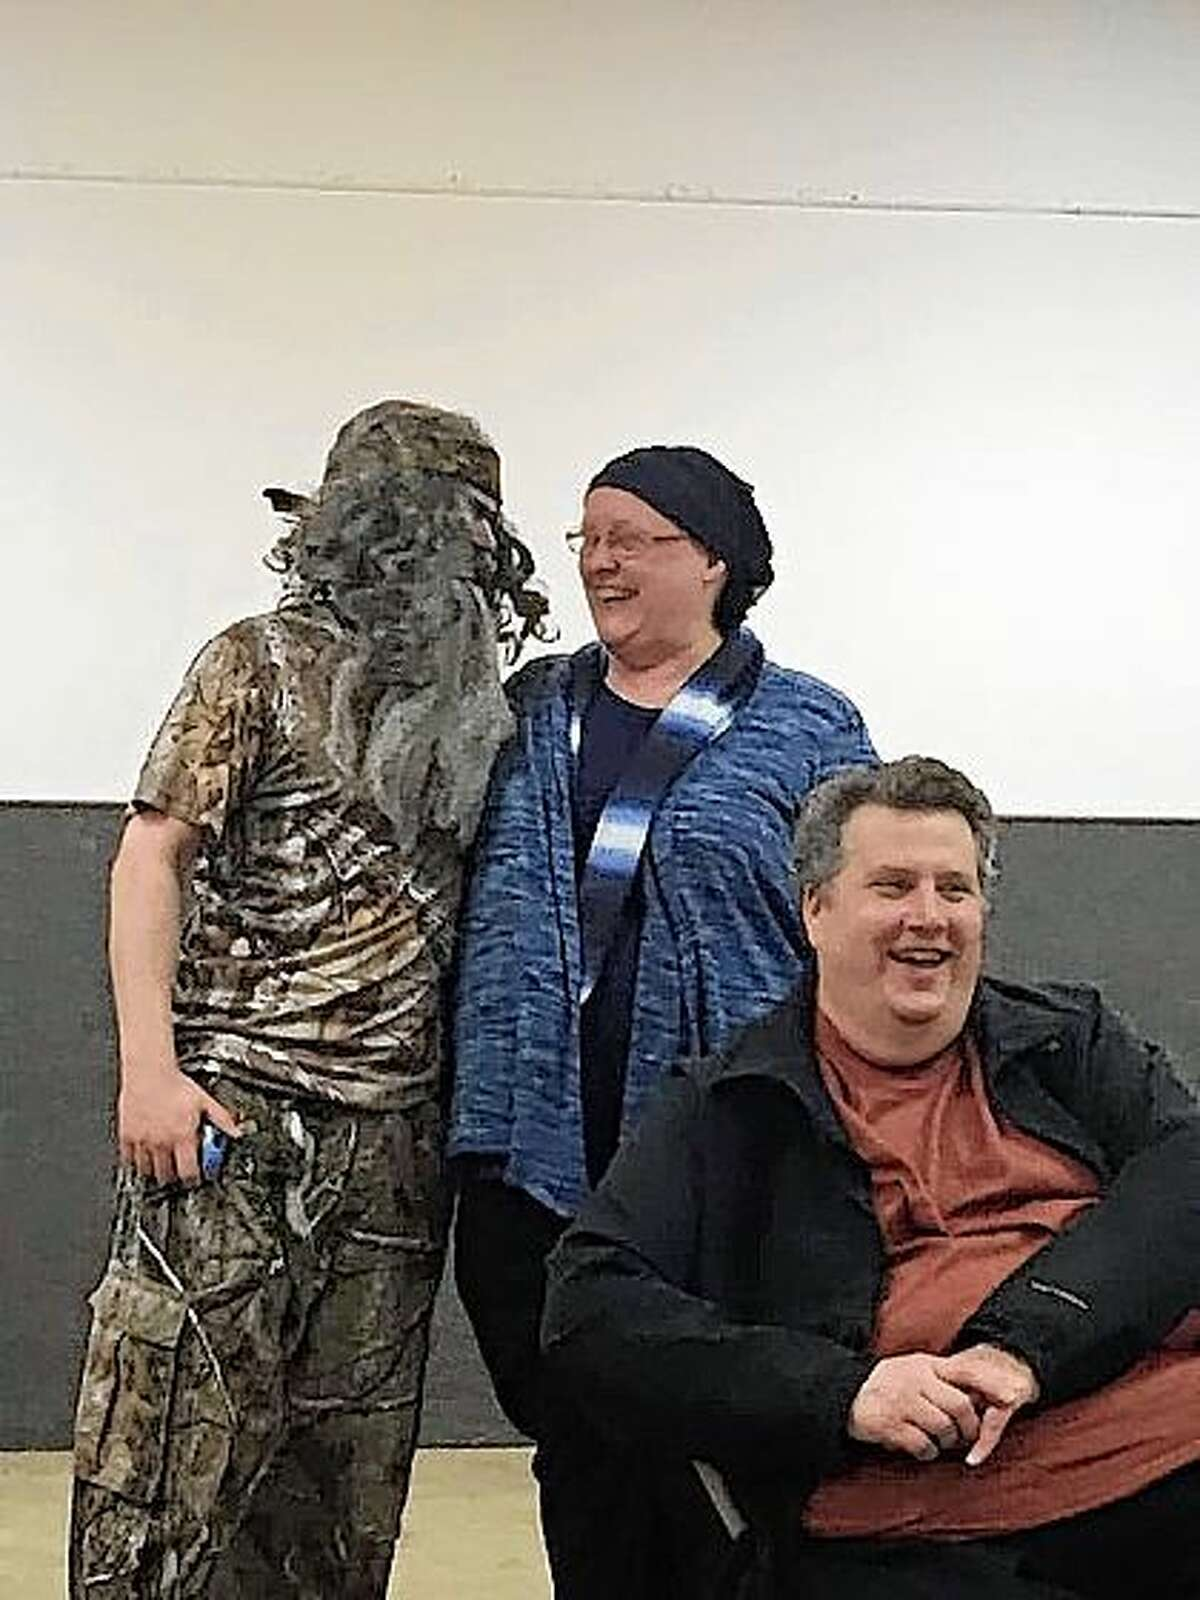 Momma Kay (portrayed by Donna DeWitt) shares a comical embrace with Phil Robertson as Frank DeWitt (front) conveys his amusement at her willingness to kill for $100,000 to re-style their basement!